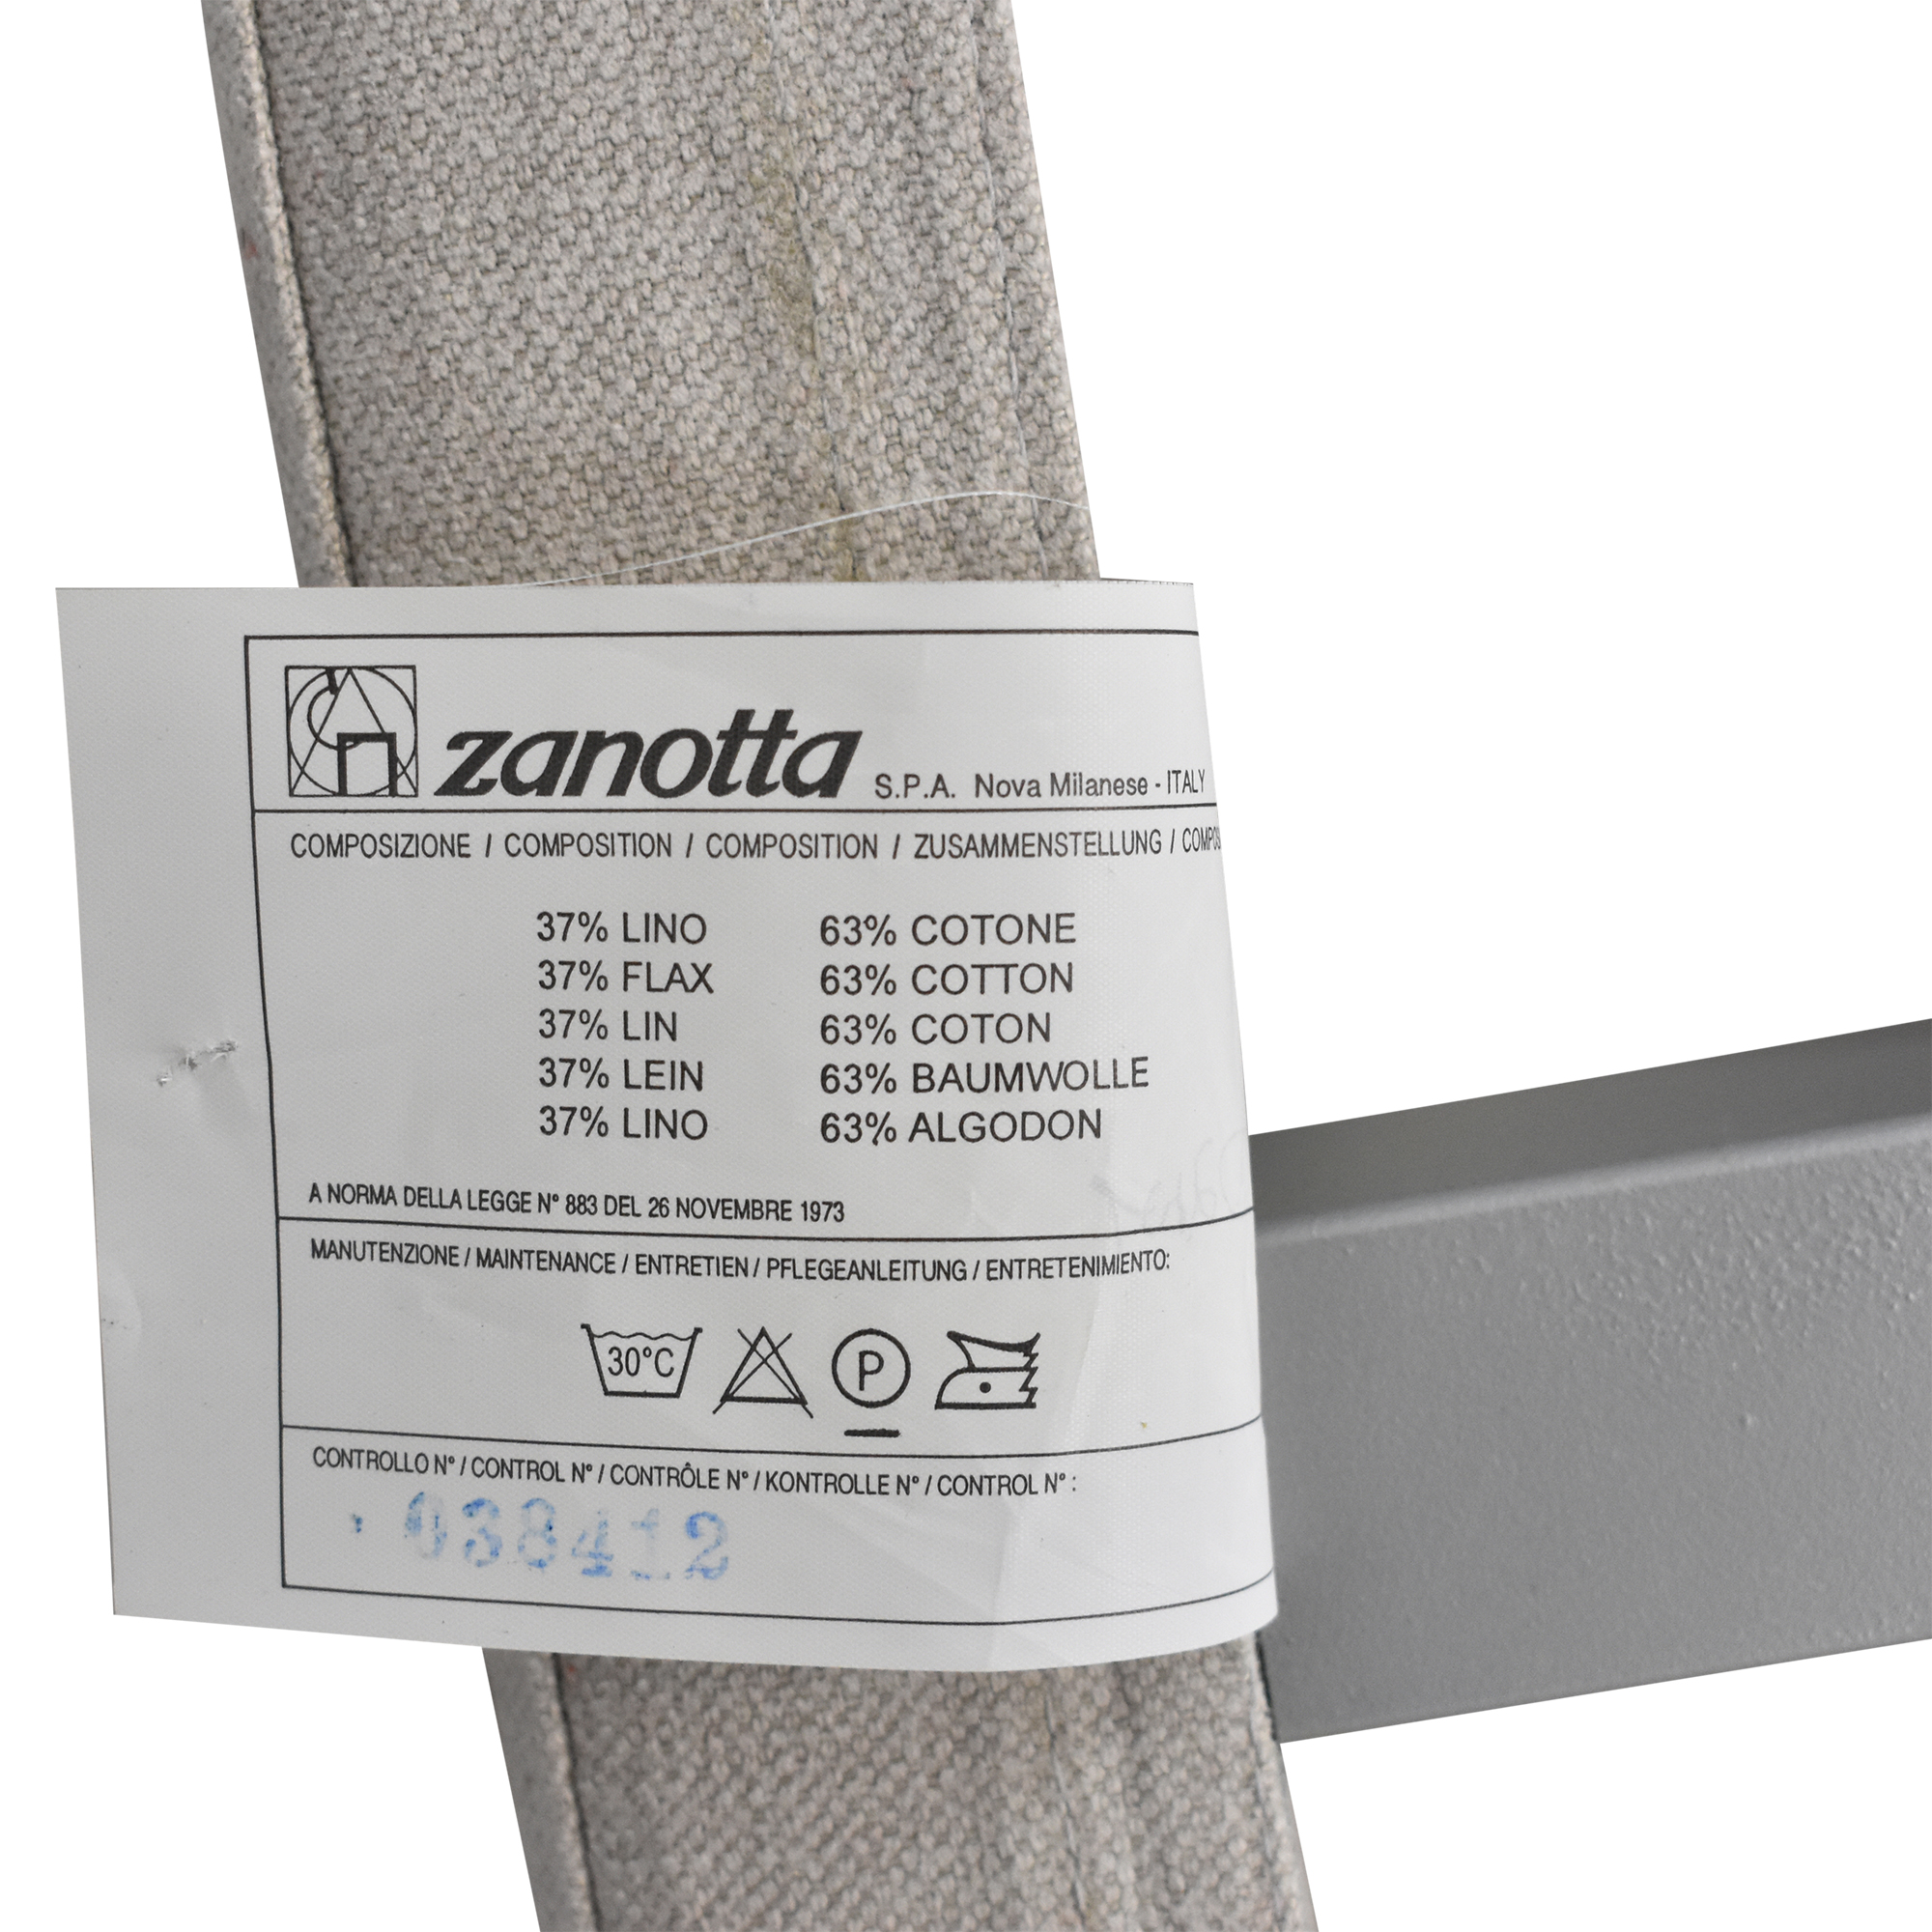 Zanotta Zanotta Telamo King Bed light grey